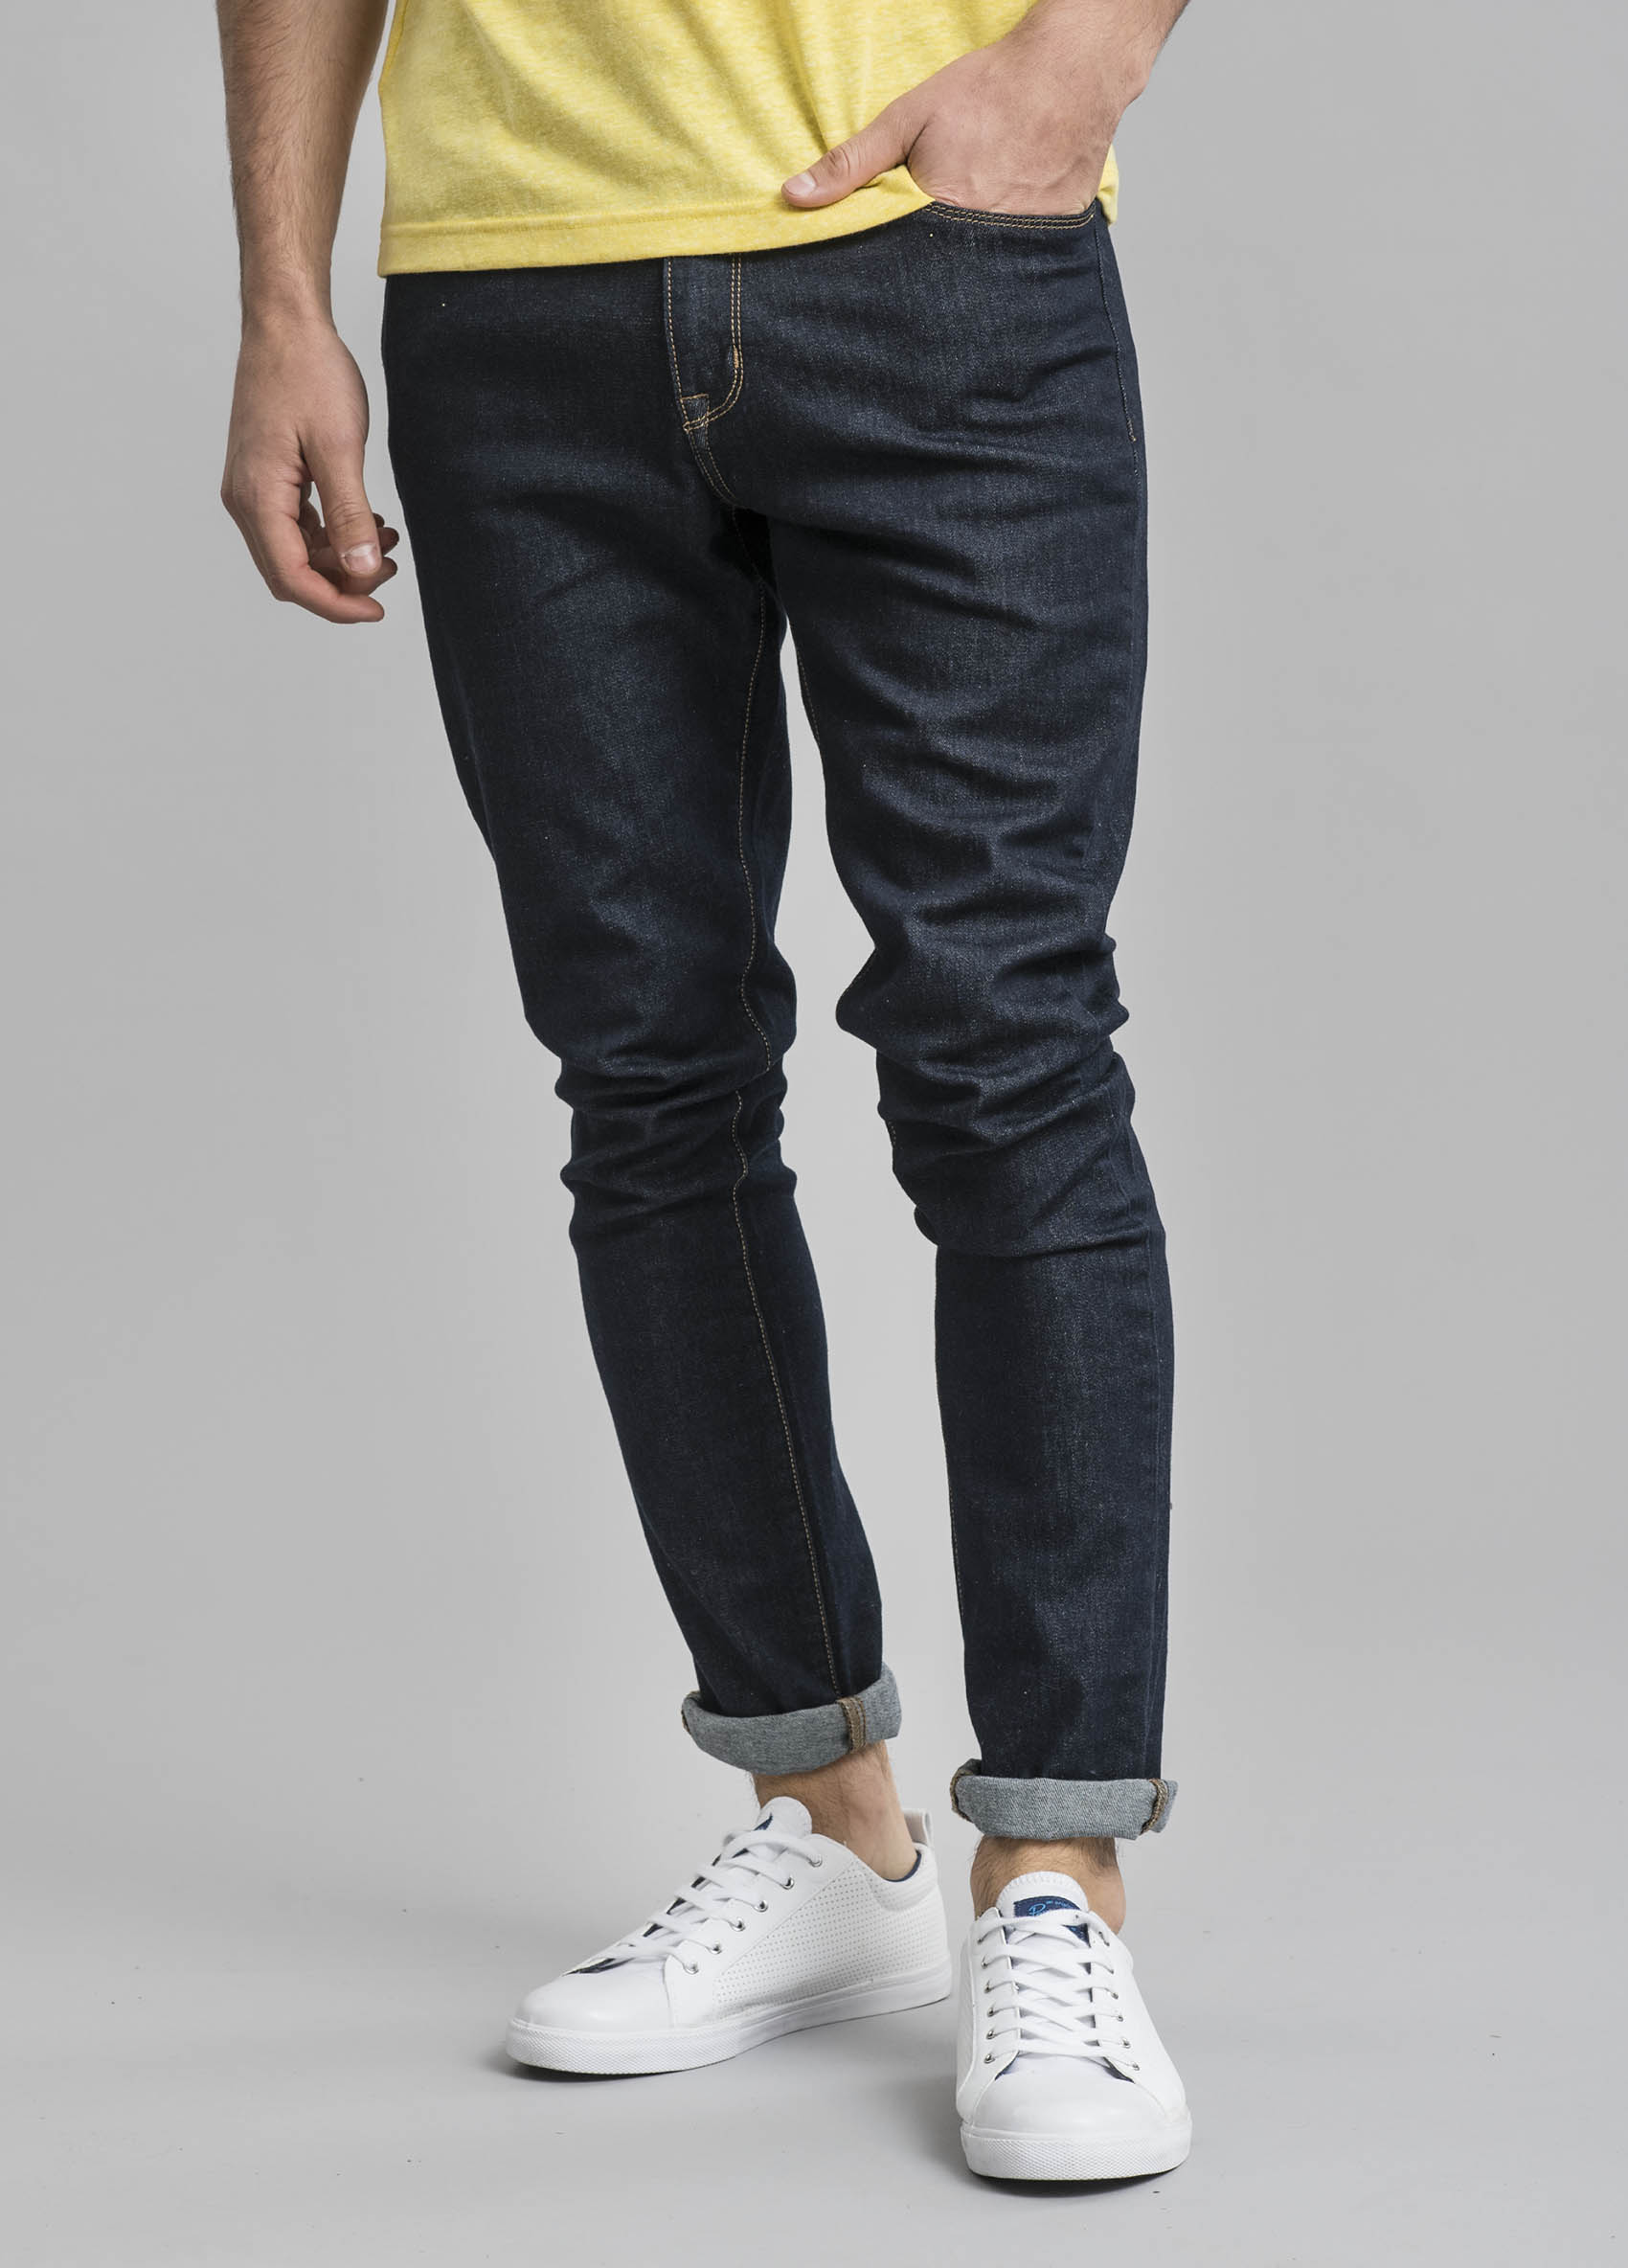 penguin_5-pkt-denim-skinny_54-13-2020__picture-11574